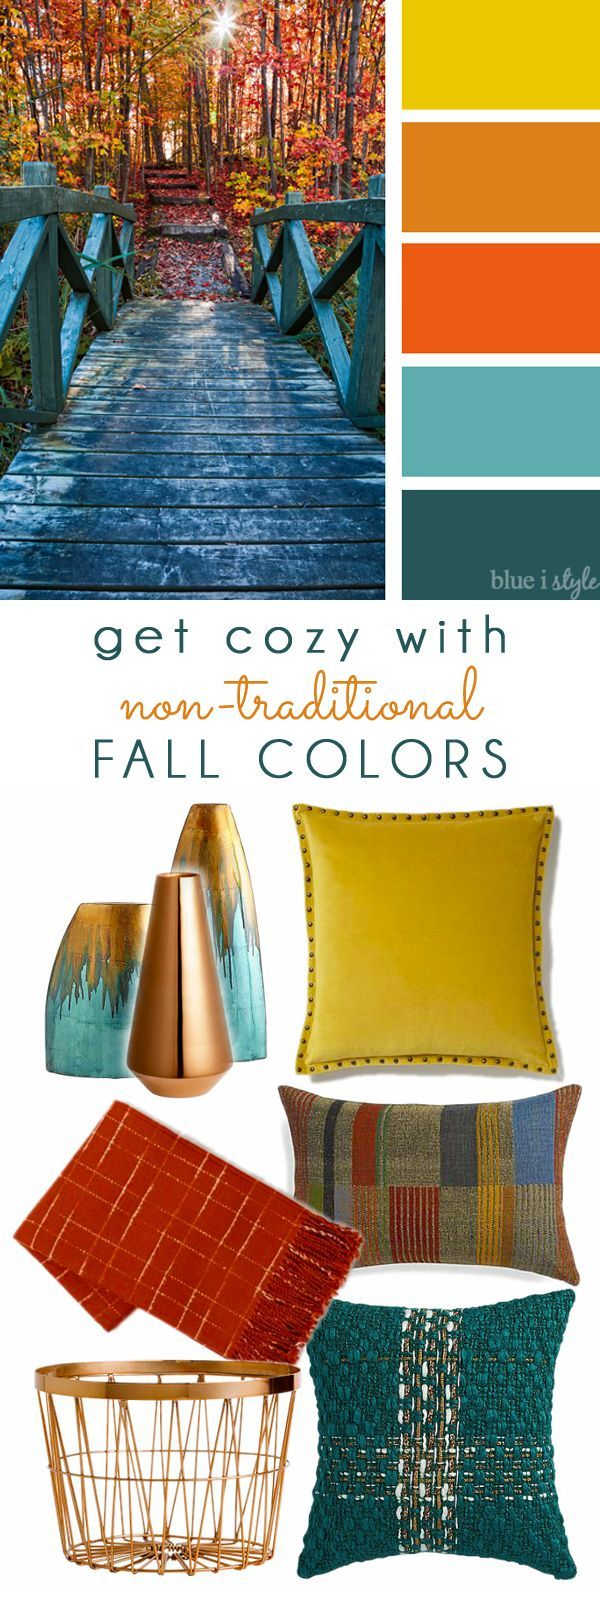 COZY FALL COLORS! A simple mood board to help you bring these non-traditional fall colors of yellow, orange, and teal into your home decor.